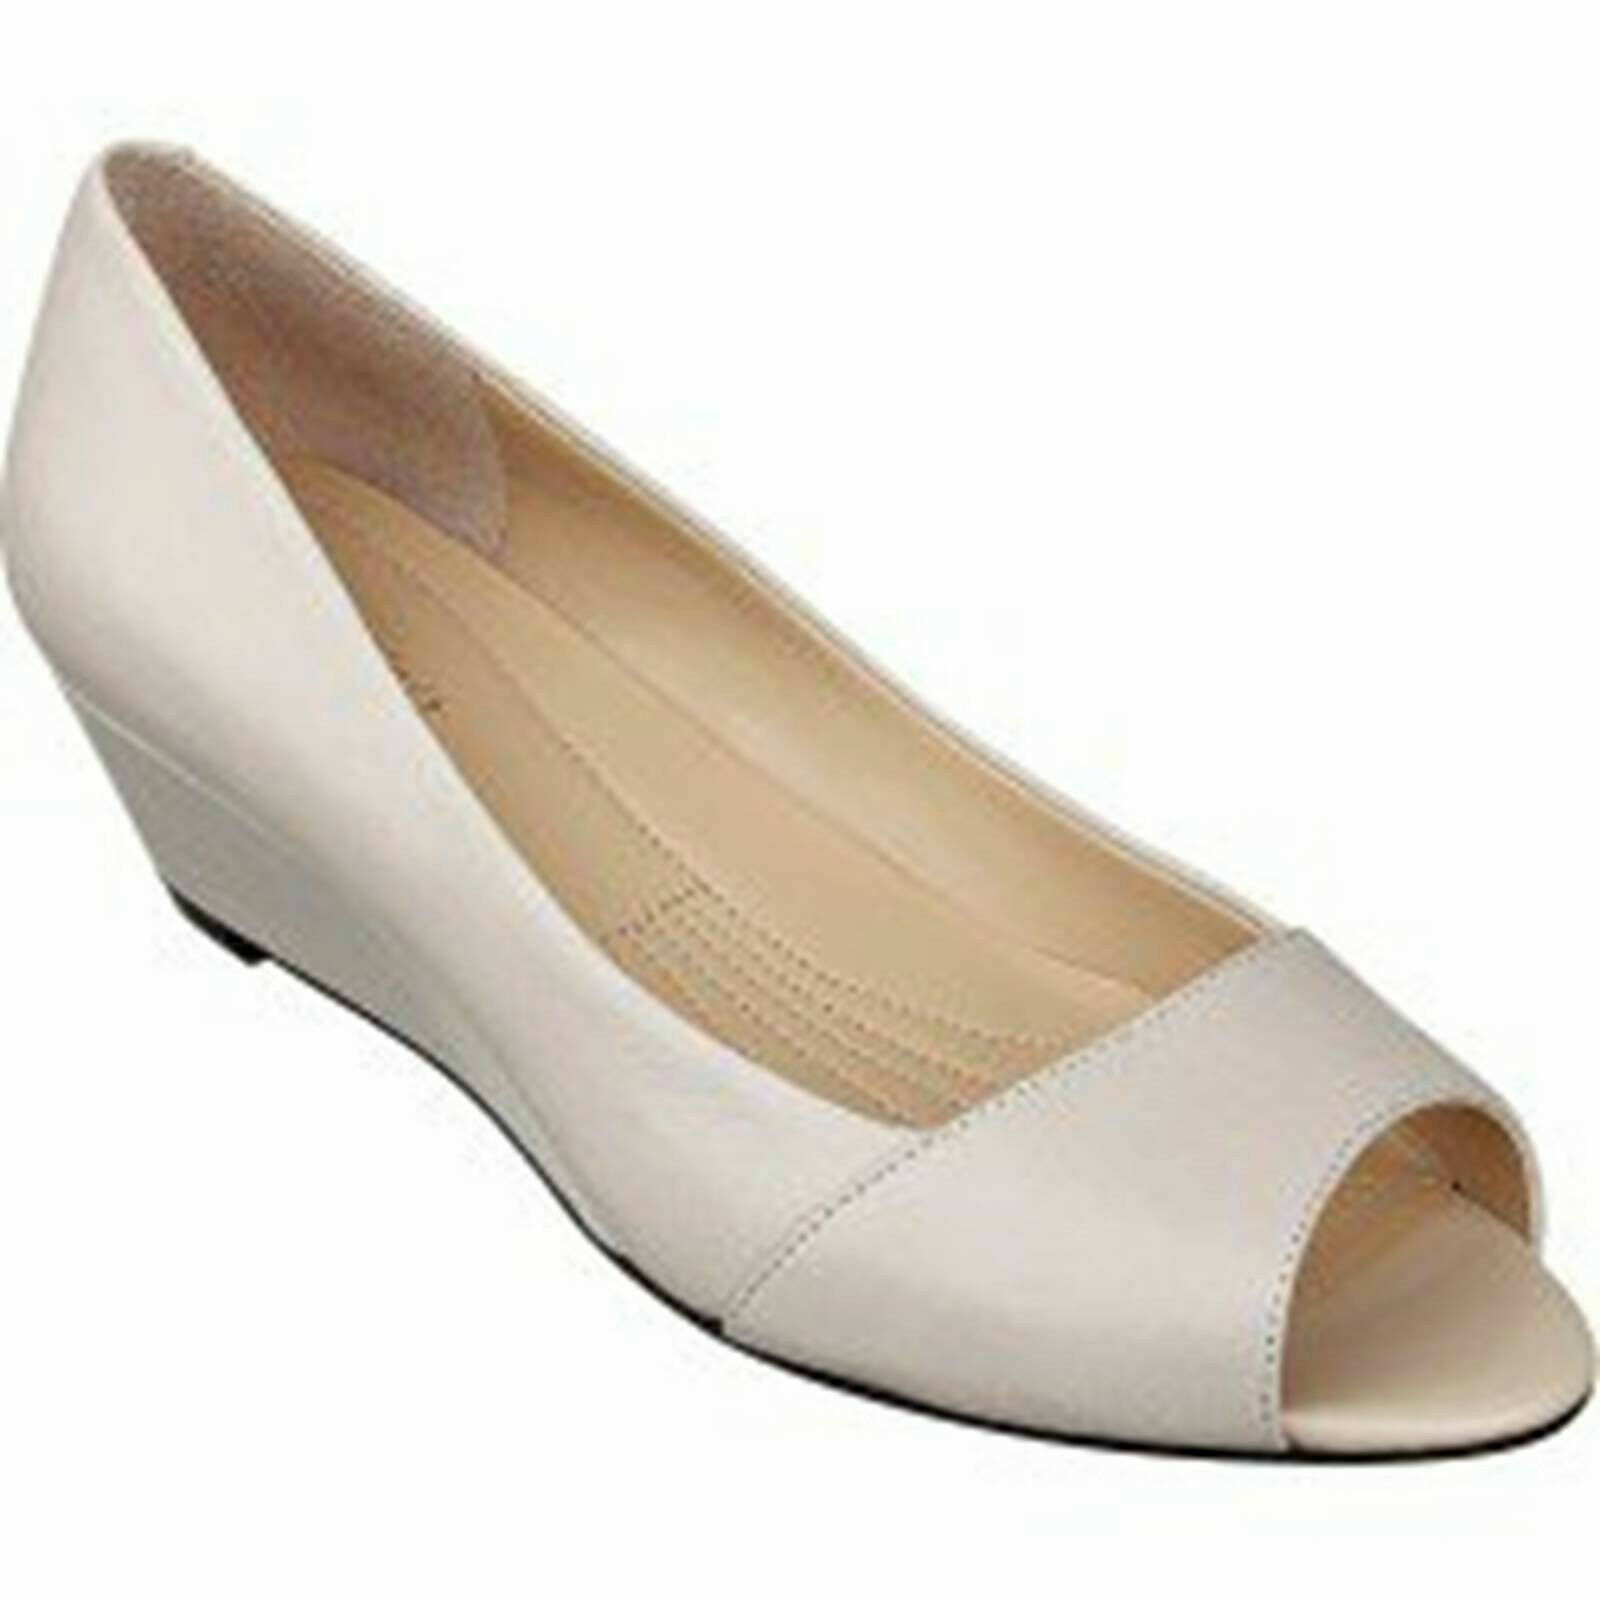 Easy Spirit Vonni ivory leather wedge wedge wedge pumps 6.5 Med NEW a8147a